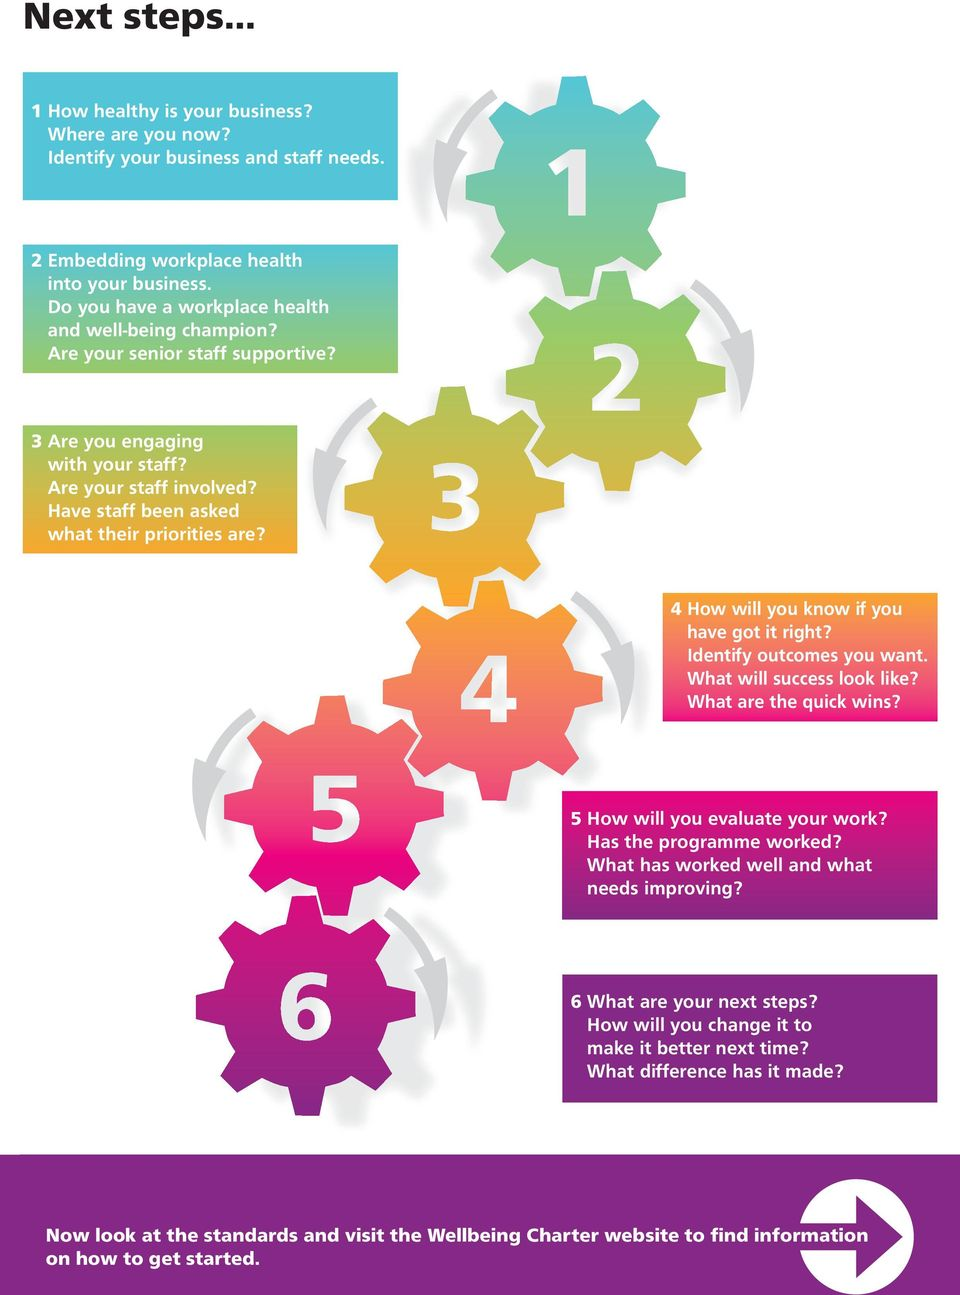 4 How will you know if you have got it right? Identify outcomes you want. What will success look like? What are the quick wins? 5 How will you evaluate your work? Has the programme worked?